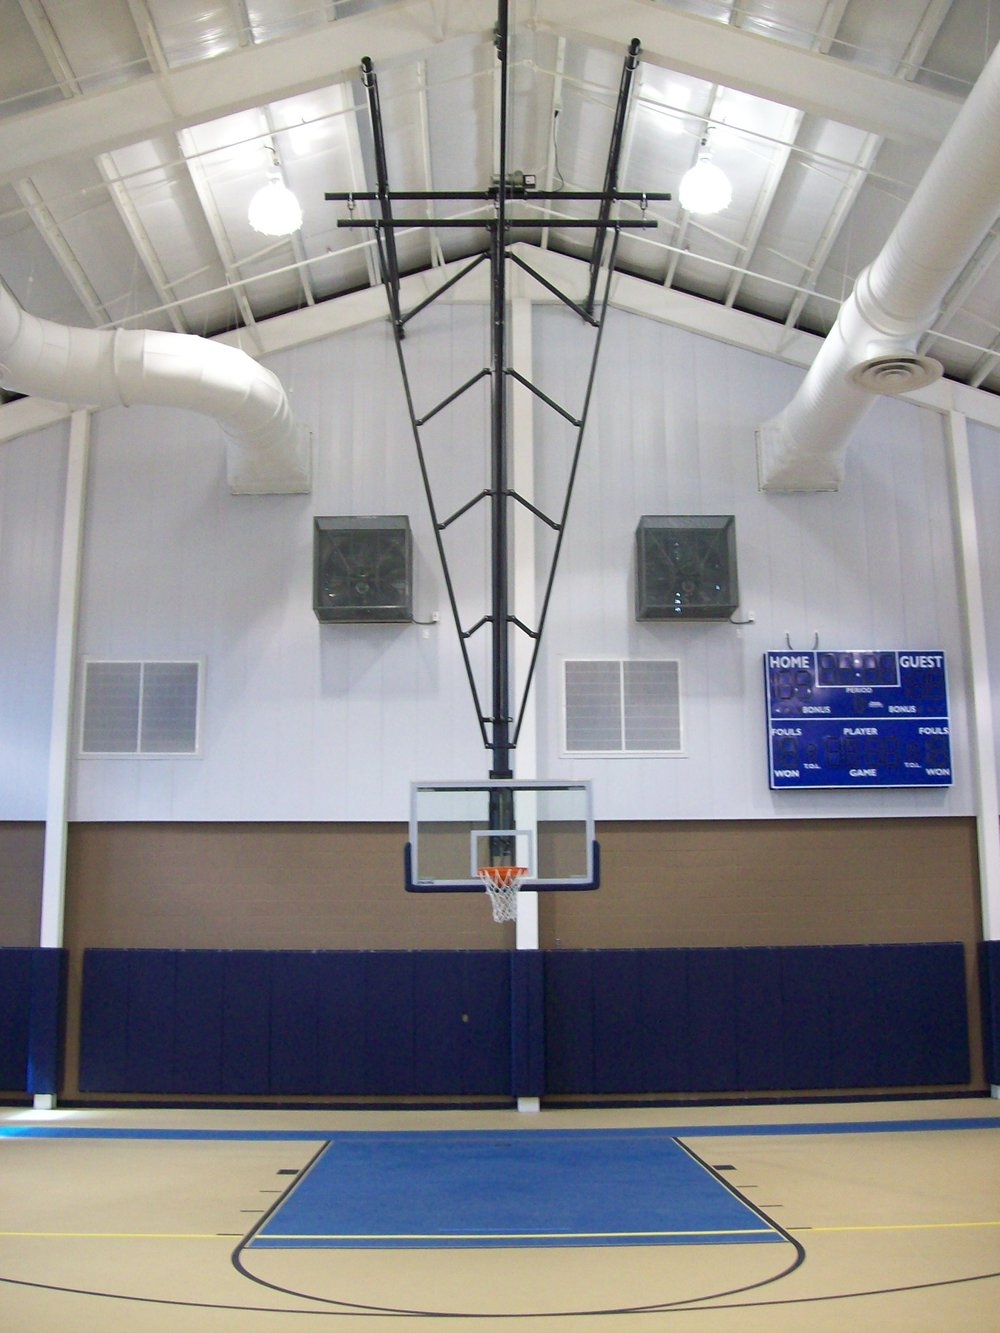 Multi Purpose - Gymnasium Equipment Construction - a staple in our construction business practices. Ceiling Mount Basketball complimented by wall pads.